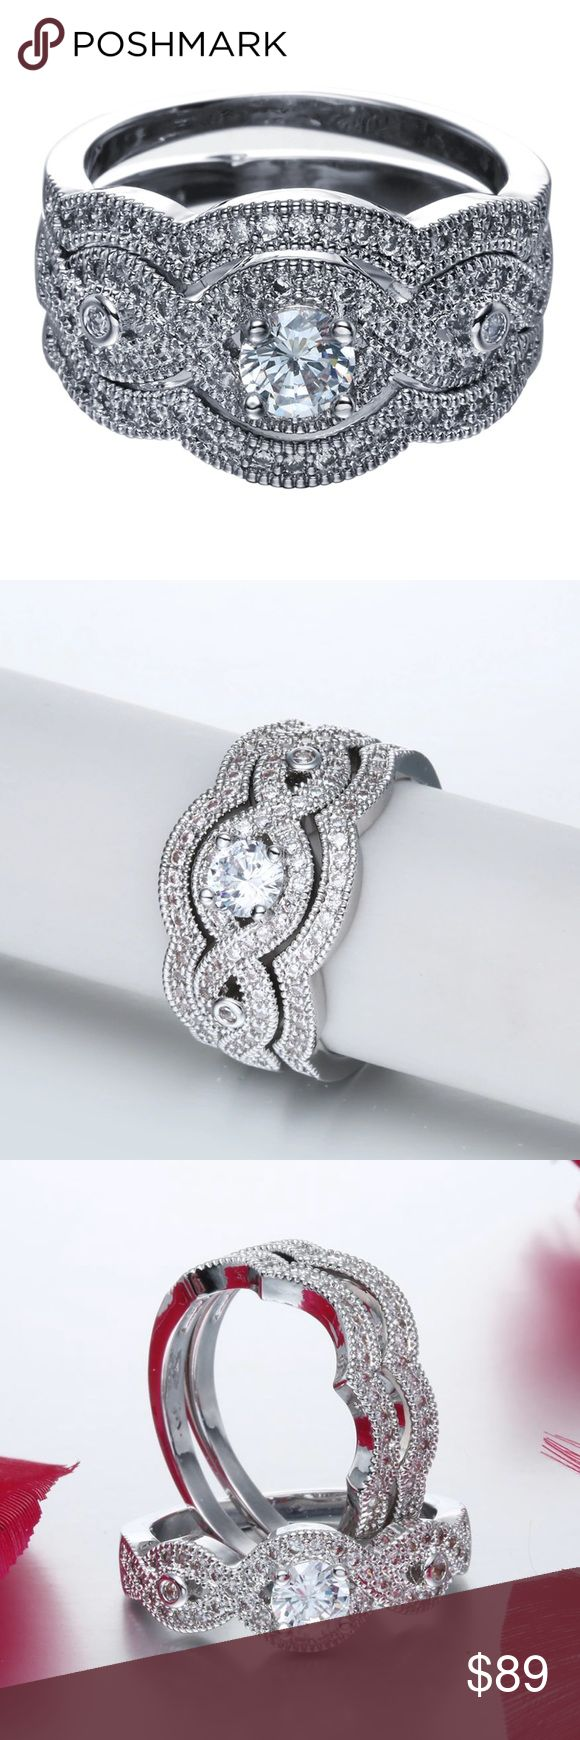 Swirl pattern white gold wedding ring for brides fashion fill - New 18 K White Gold Wedding Ring Set Brand New 18 K White Gold Filled With